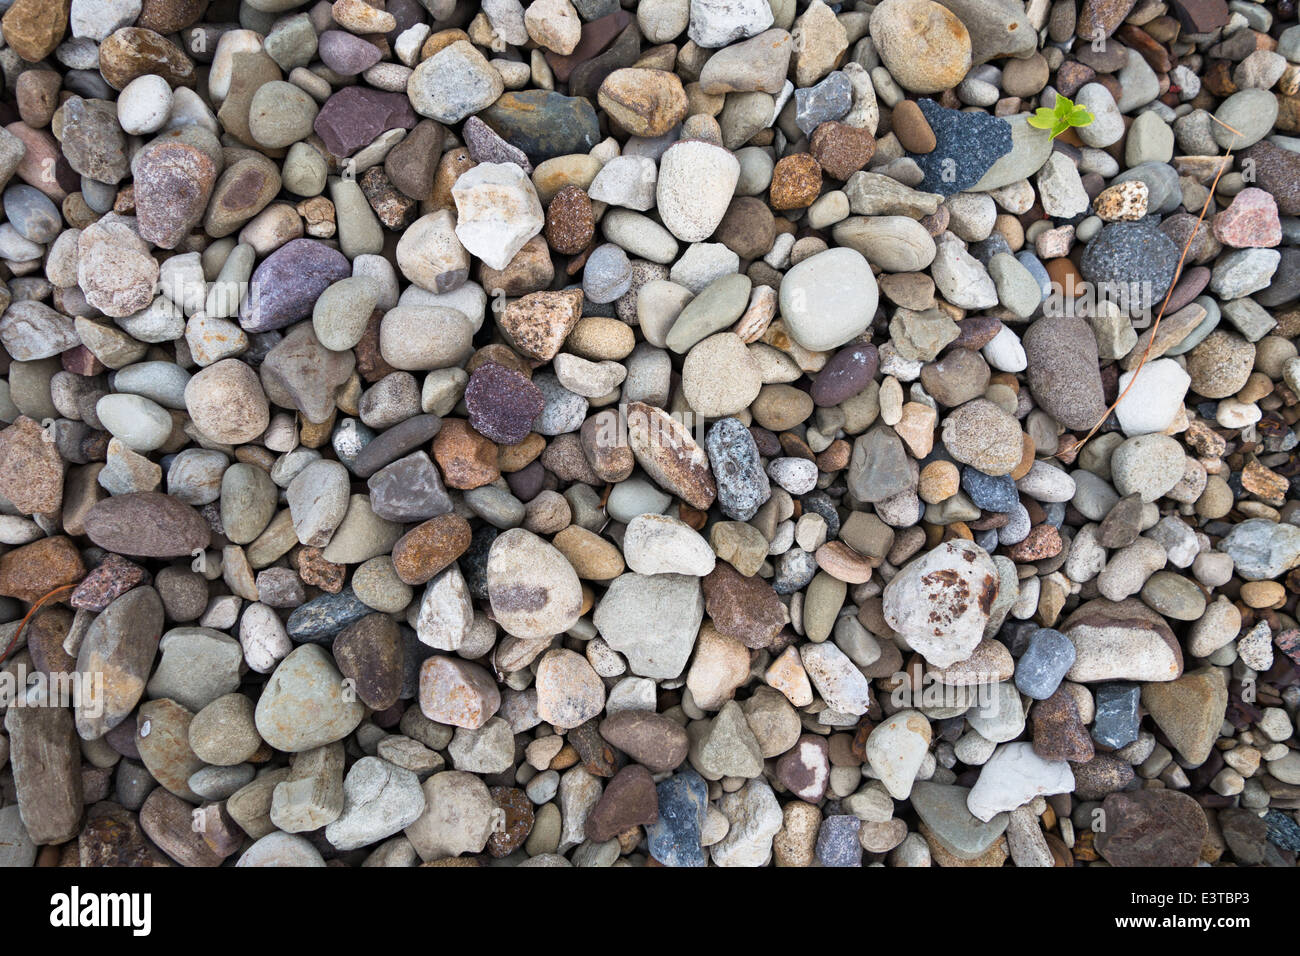 Gravel and crushed stone: difference, photo